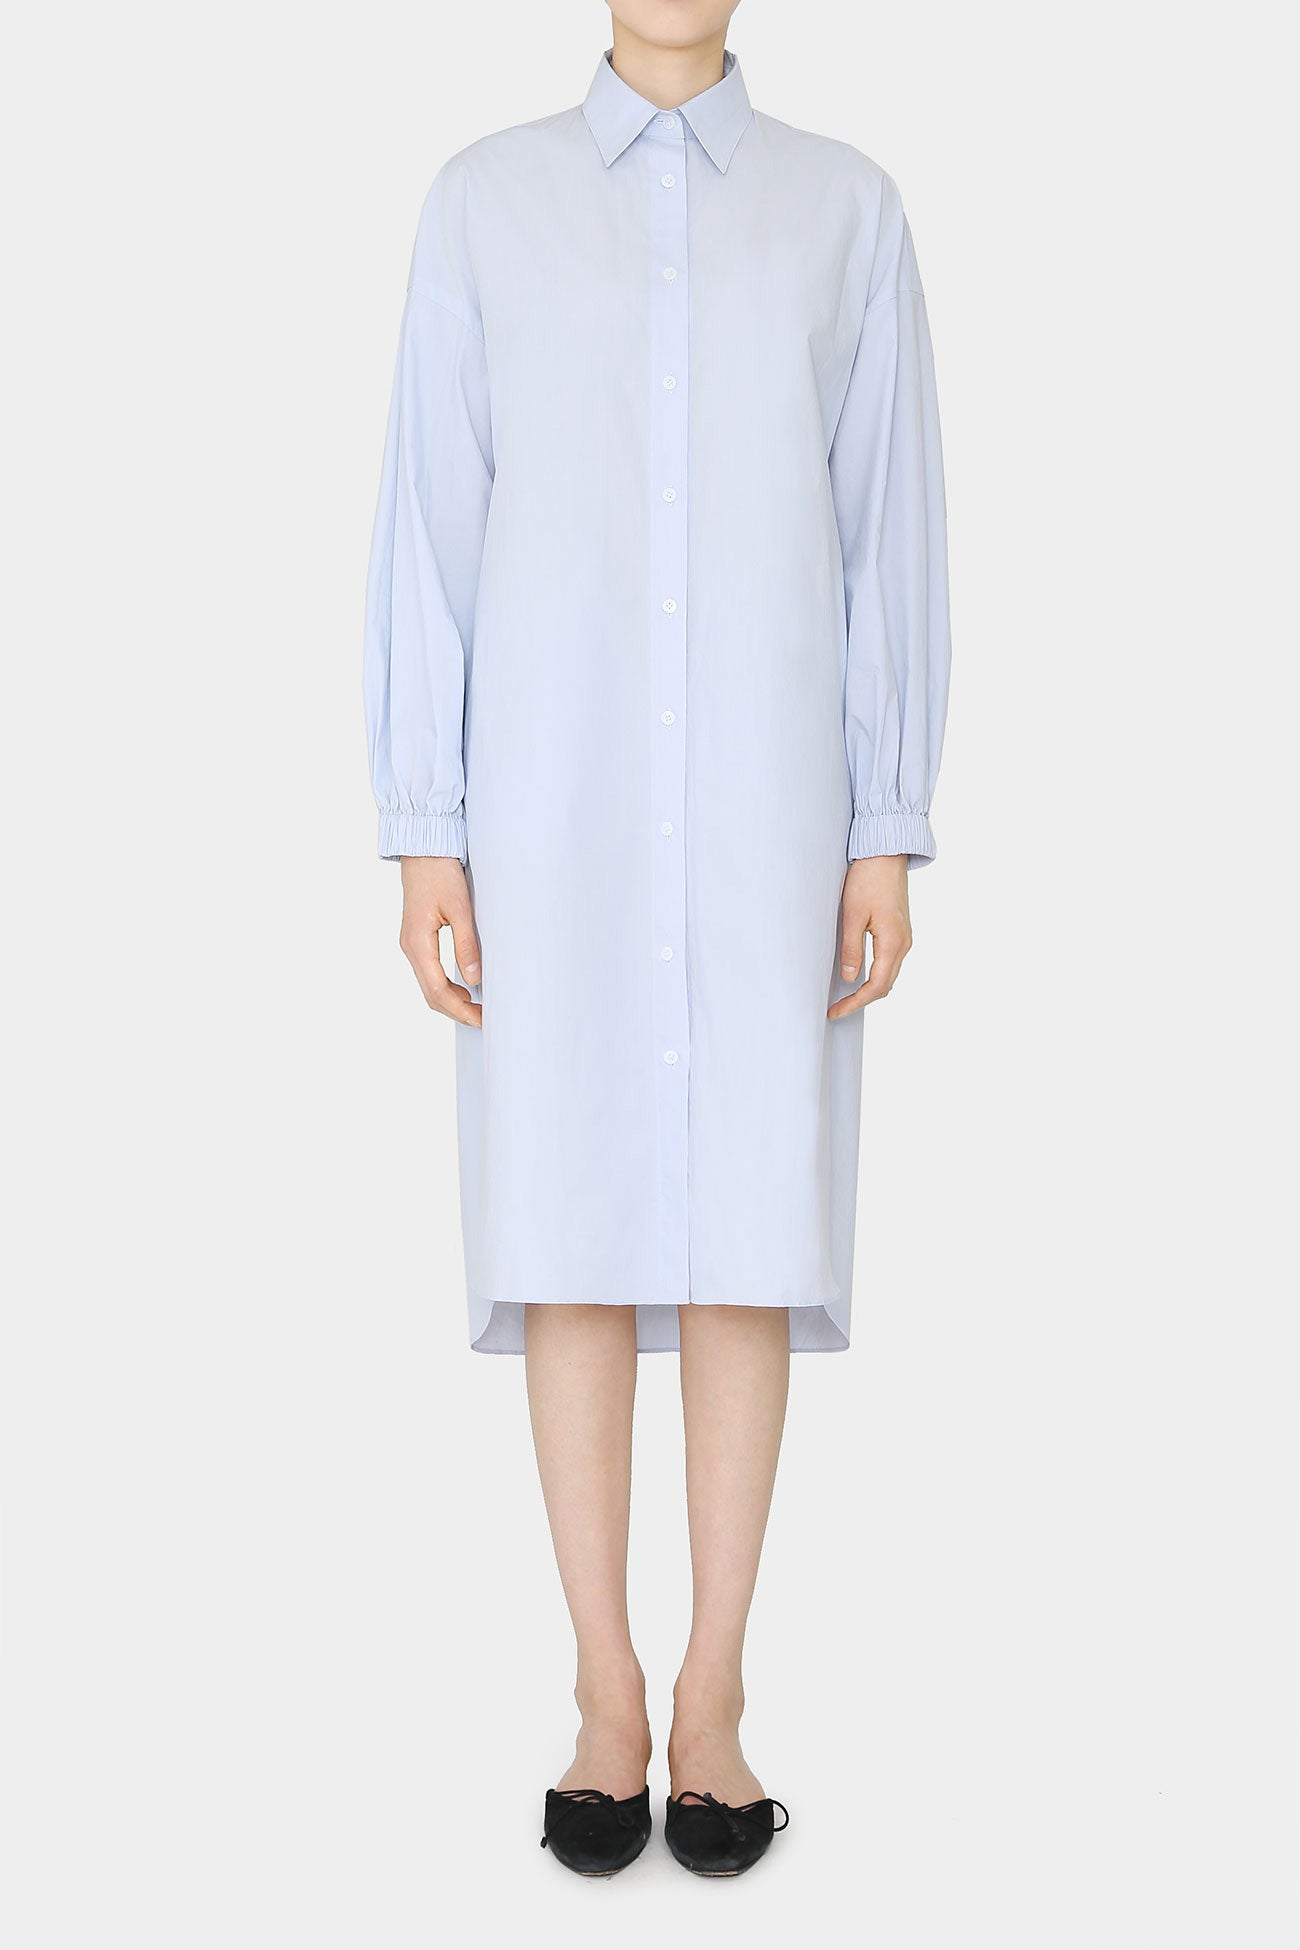 SKY TORI COTTON DRESS